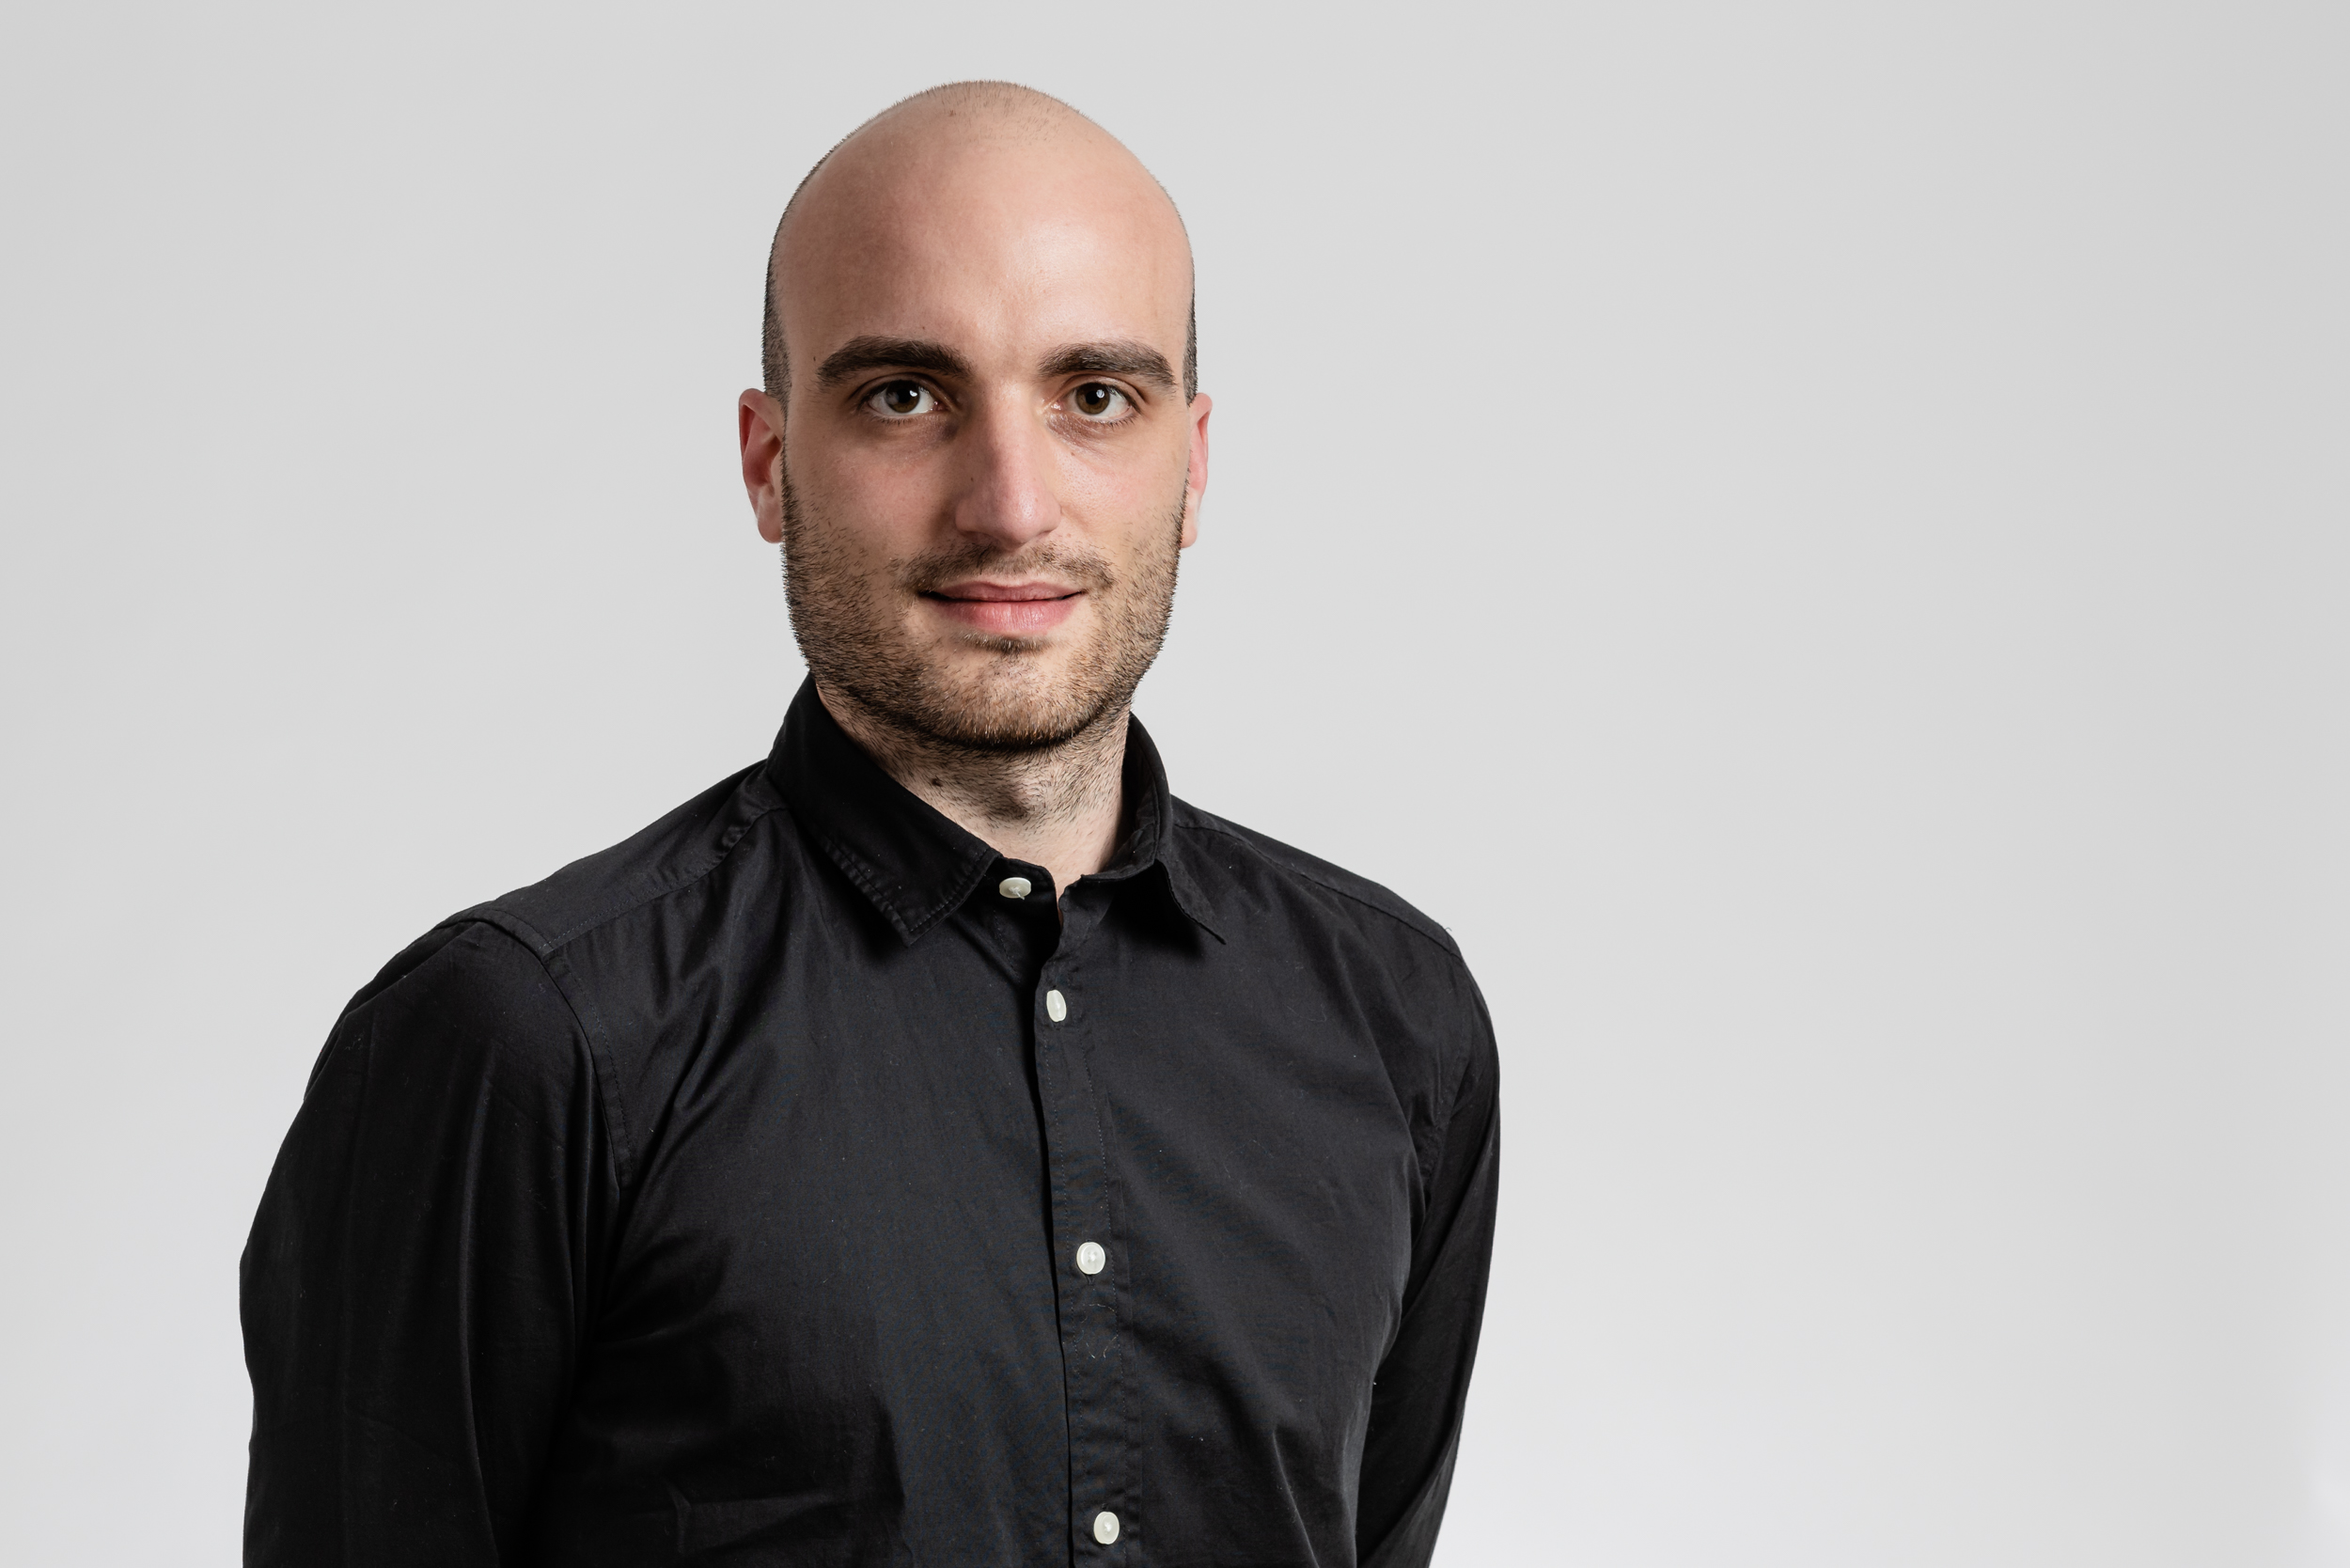 Davide Sarzotti, Architekt